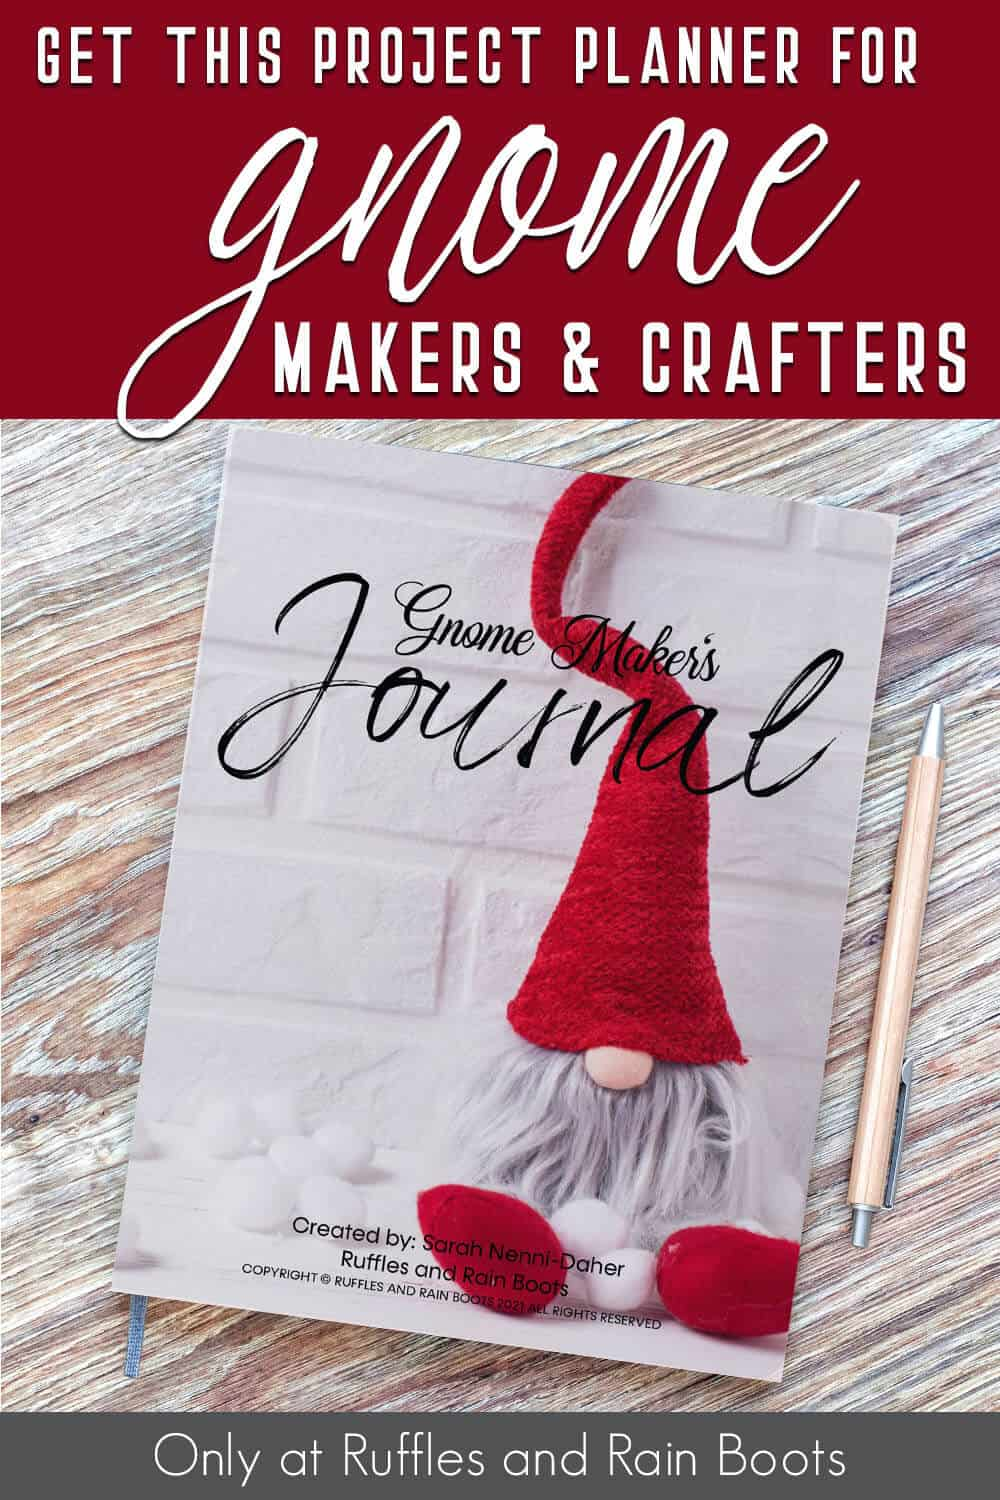 gnome maker's project planner with text which reads get this project planner for gnome makers and crafters